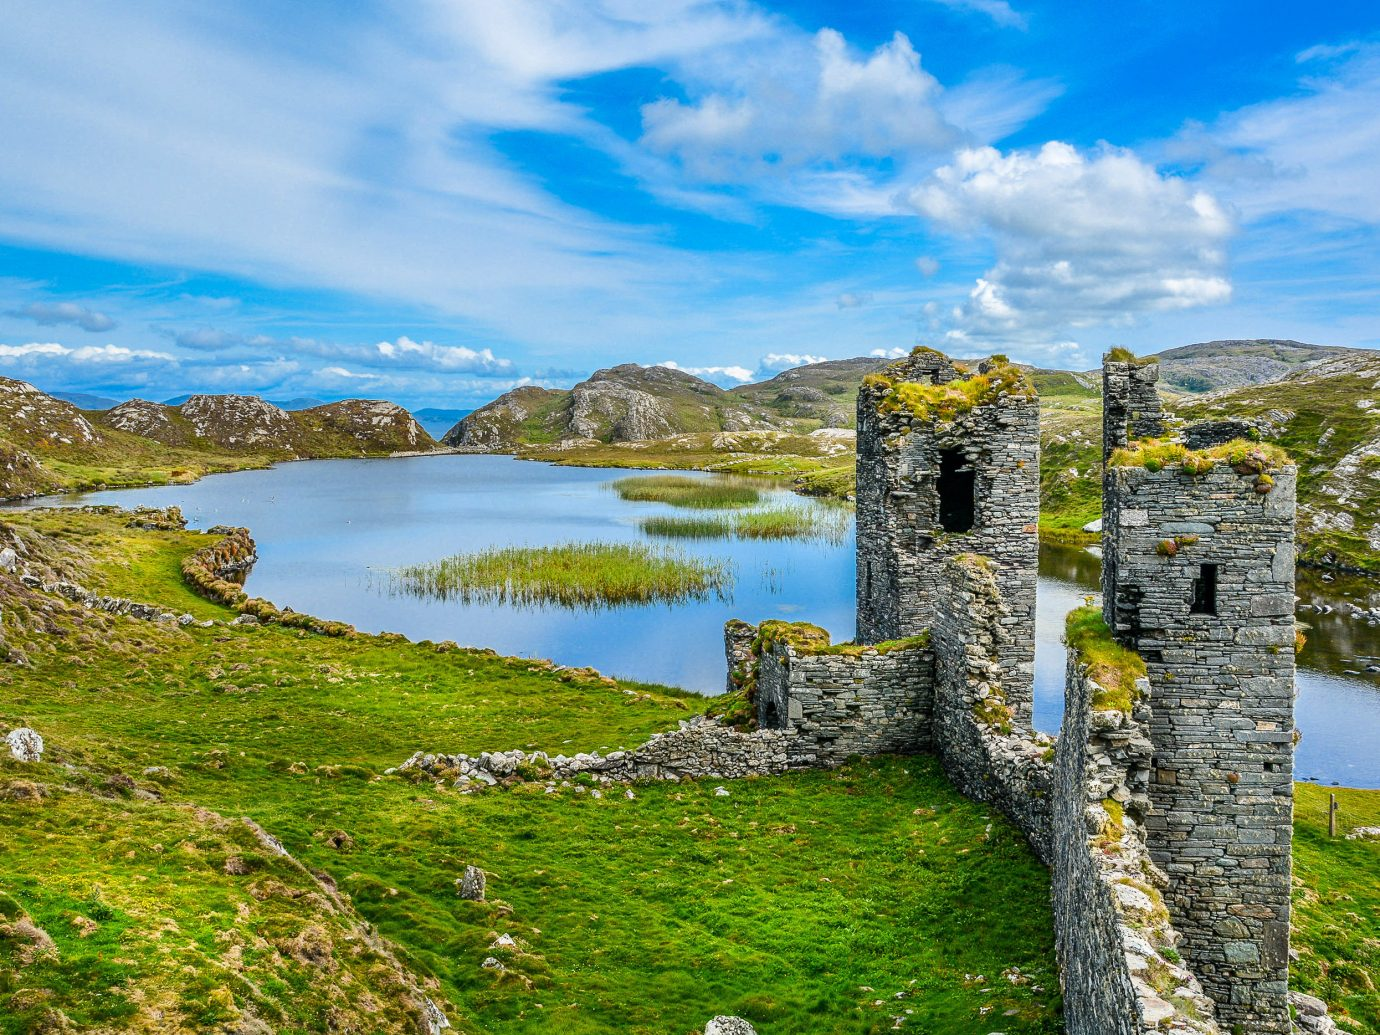 Offbeat sky grass outdoor Nature building highland reflection cloud green mount scenery national trust for places of historic interest or natural beauty grassy hill water landscape mountain loch overlooking Lake castle tree rock lush reservoir bank Ruins hillside fell meteorological phenomenon pasture